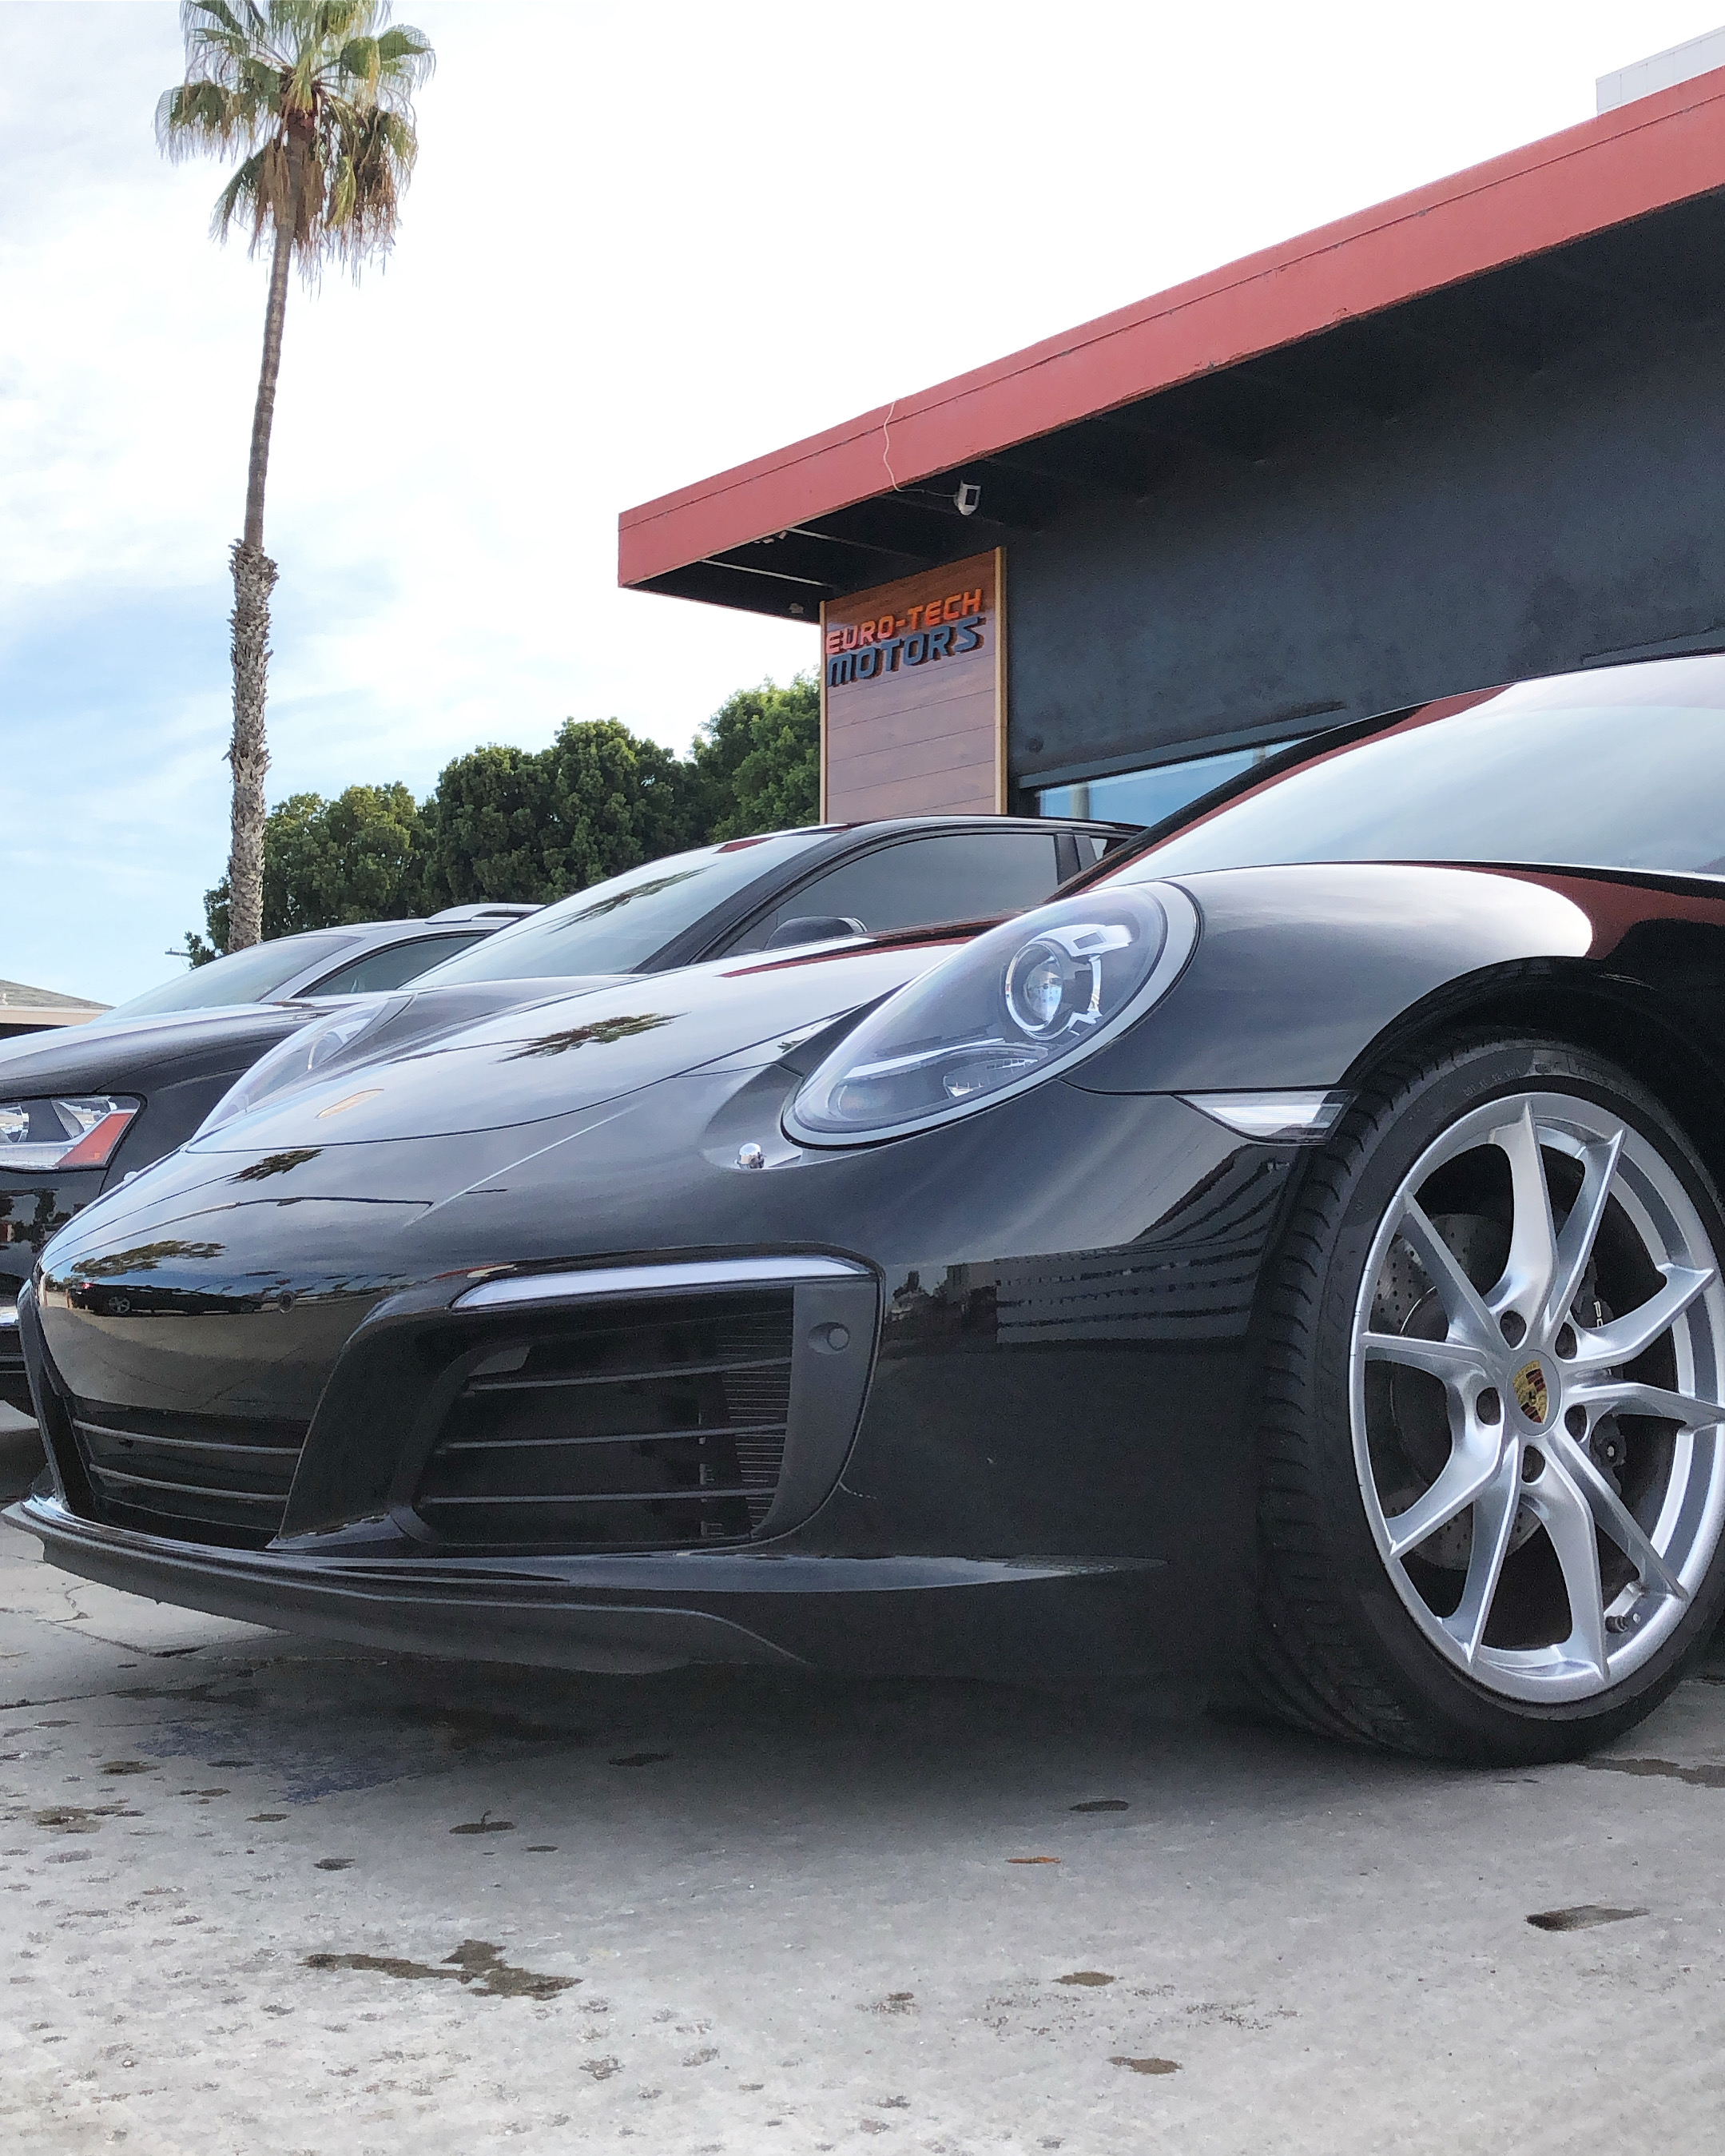 Porsche Repair Los Angeles: How much should I pay for Porsche repairs?